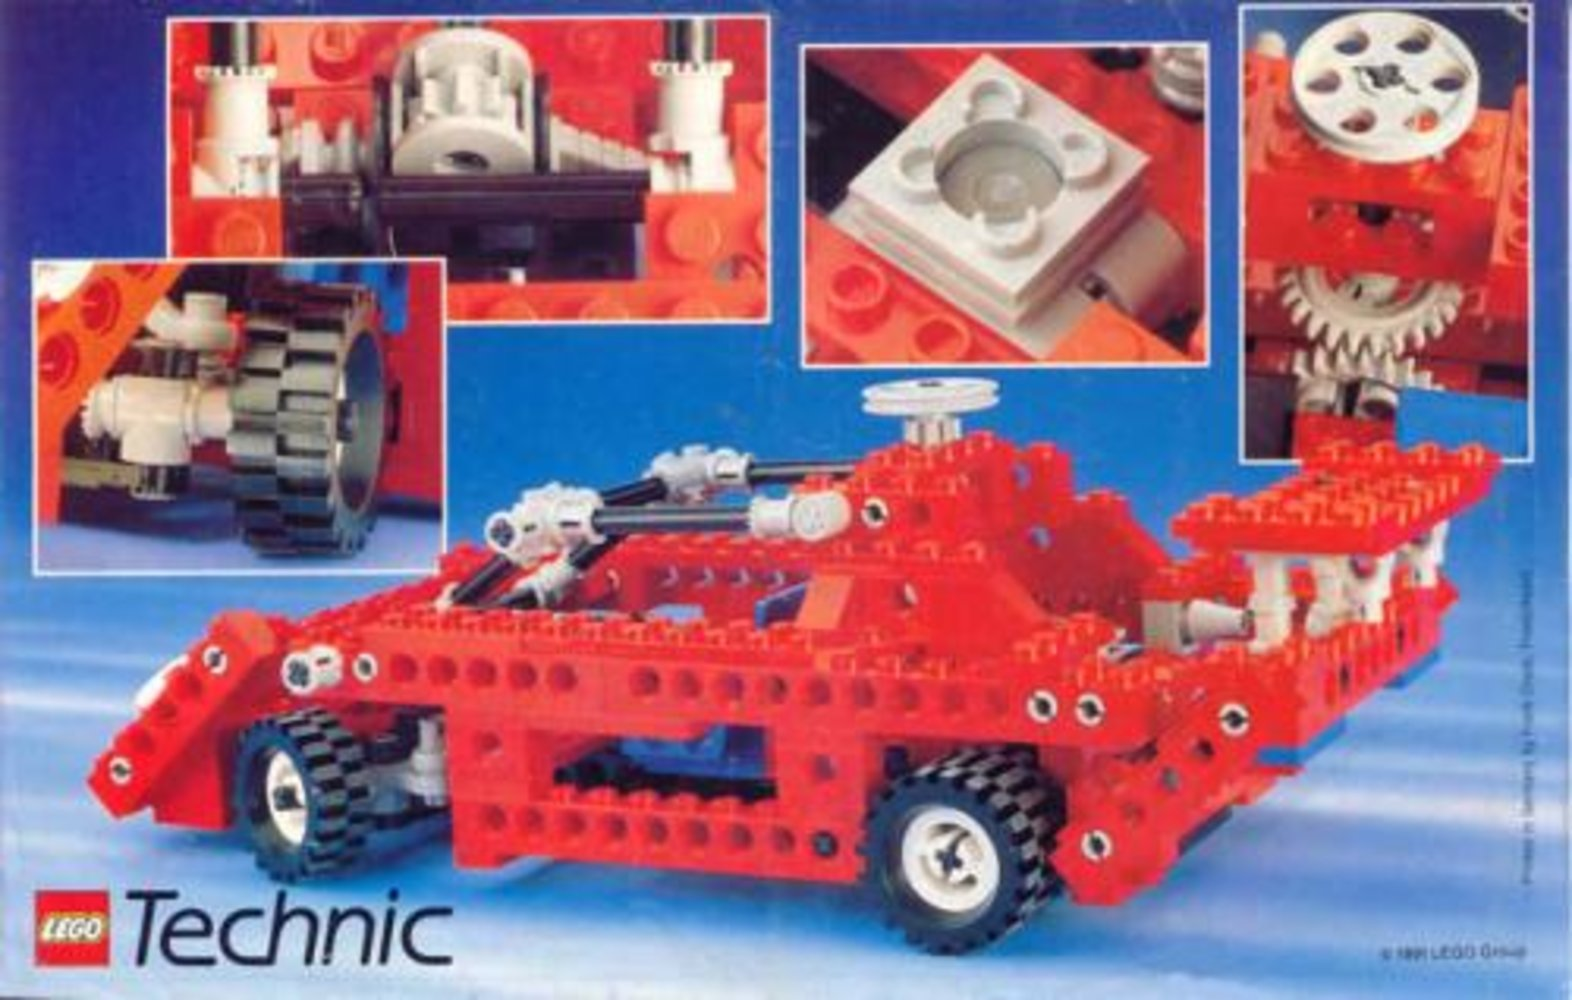 Technic Super Set